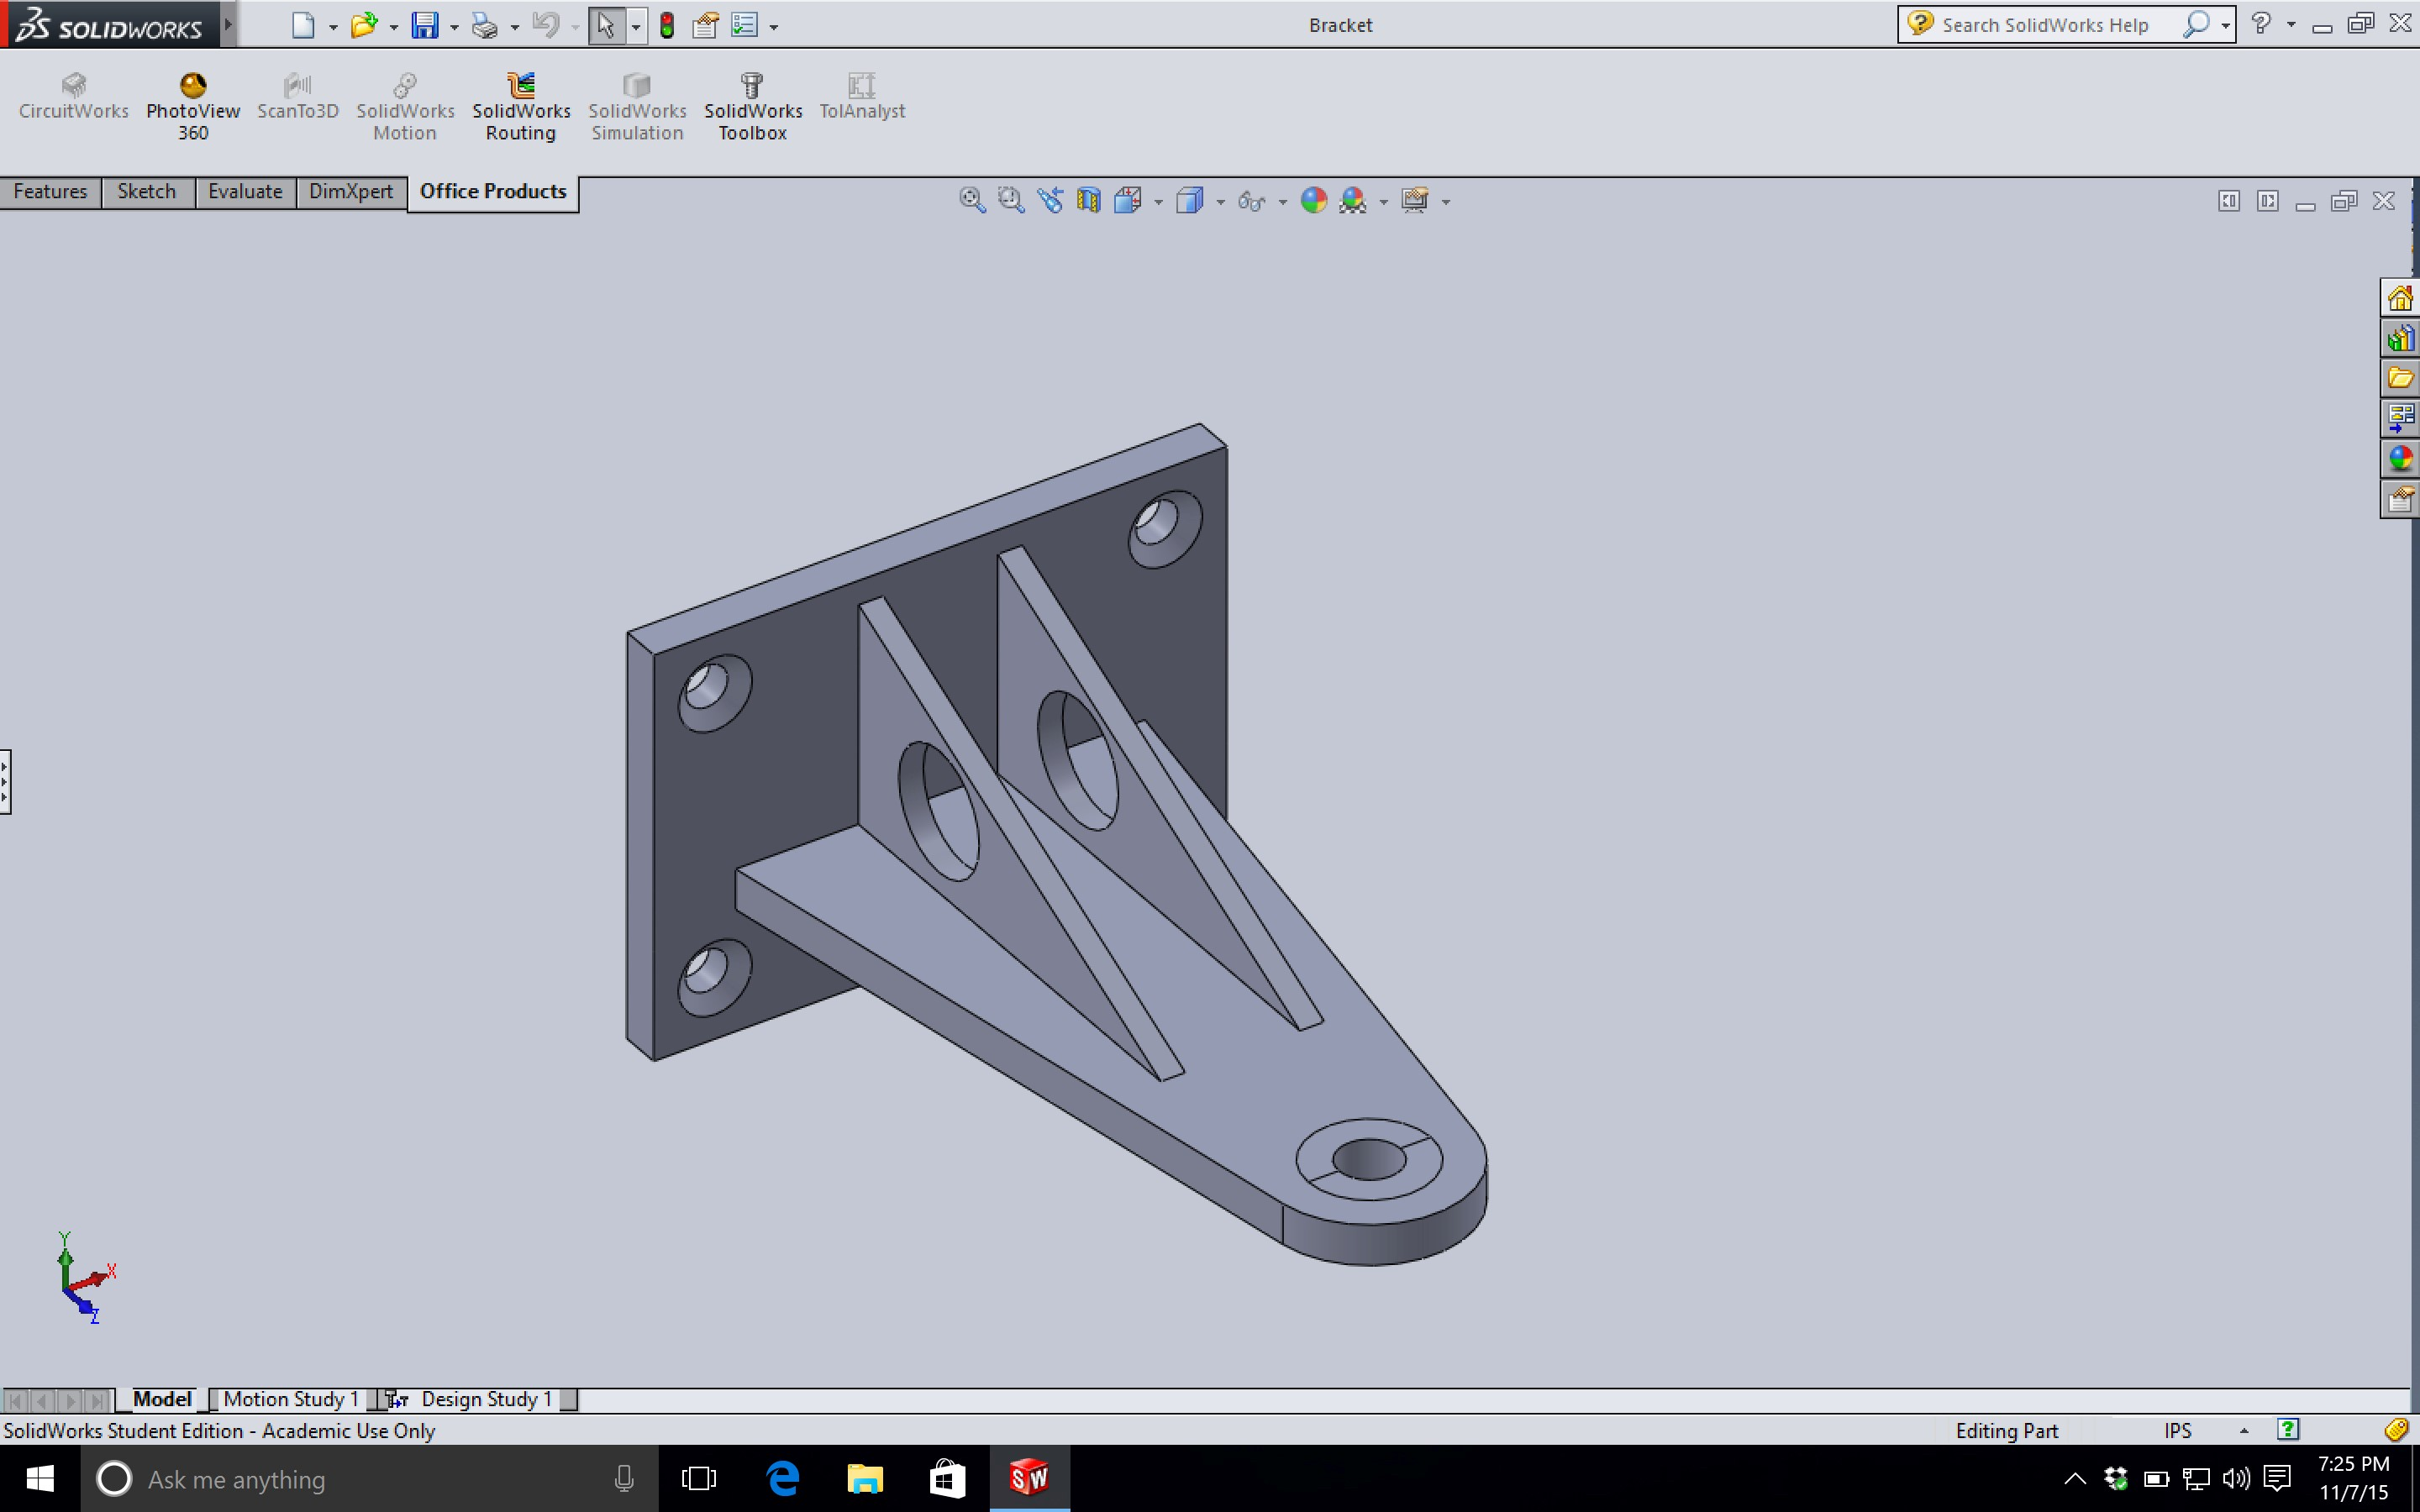 solidworks for mac